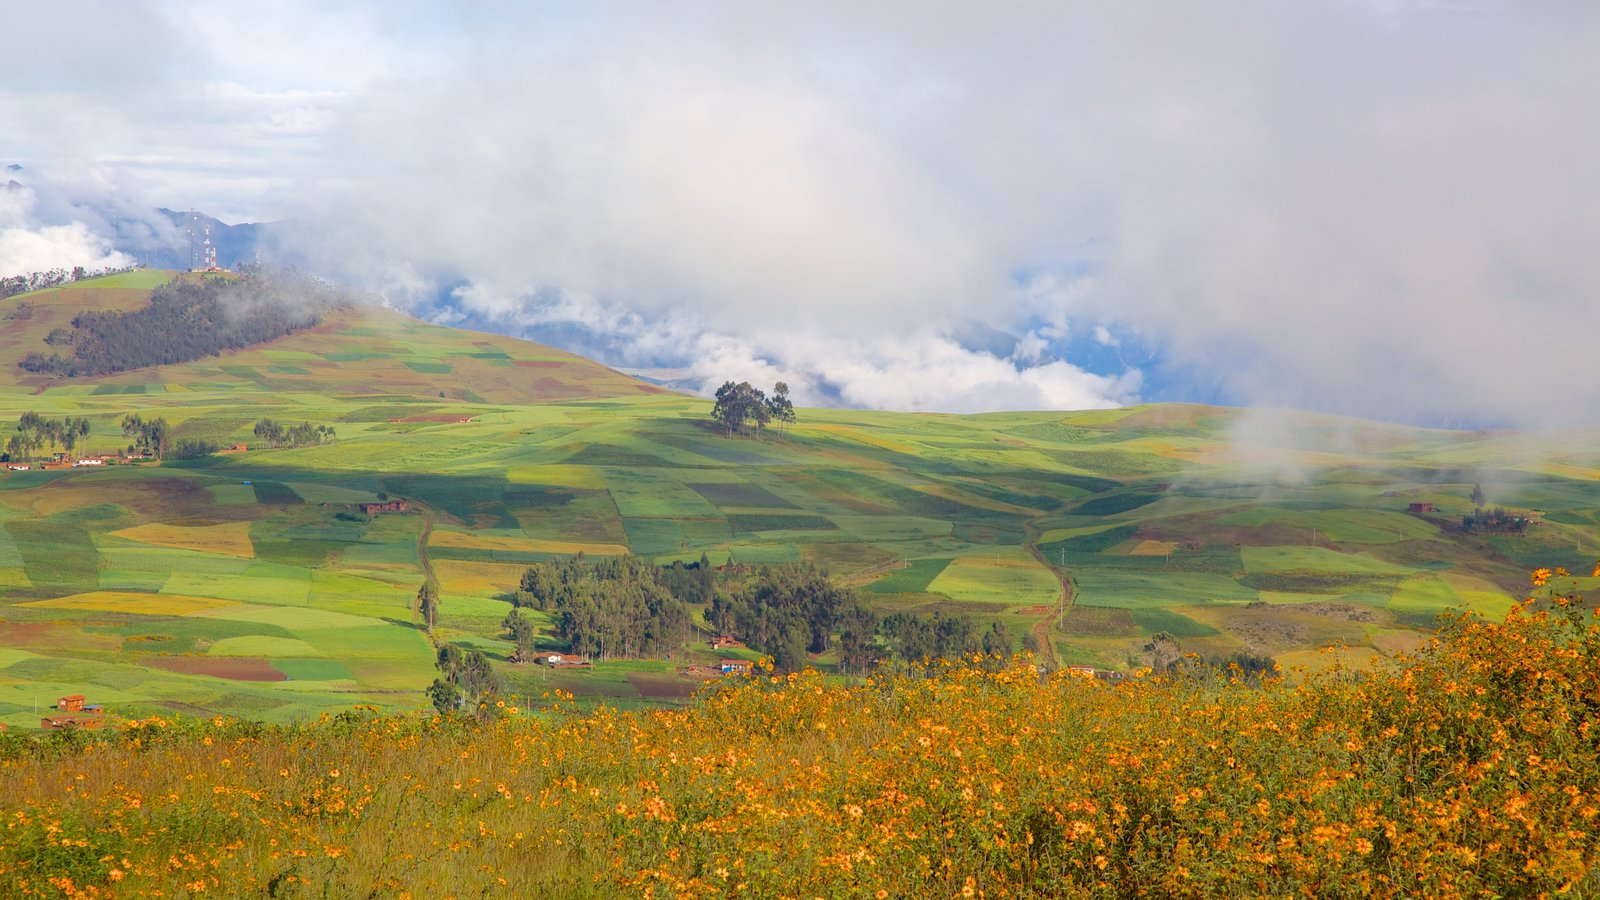 Cusco showing tranquil scenes, wildflowers and landscape views